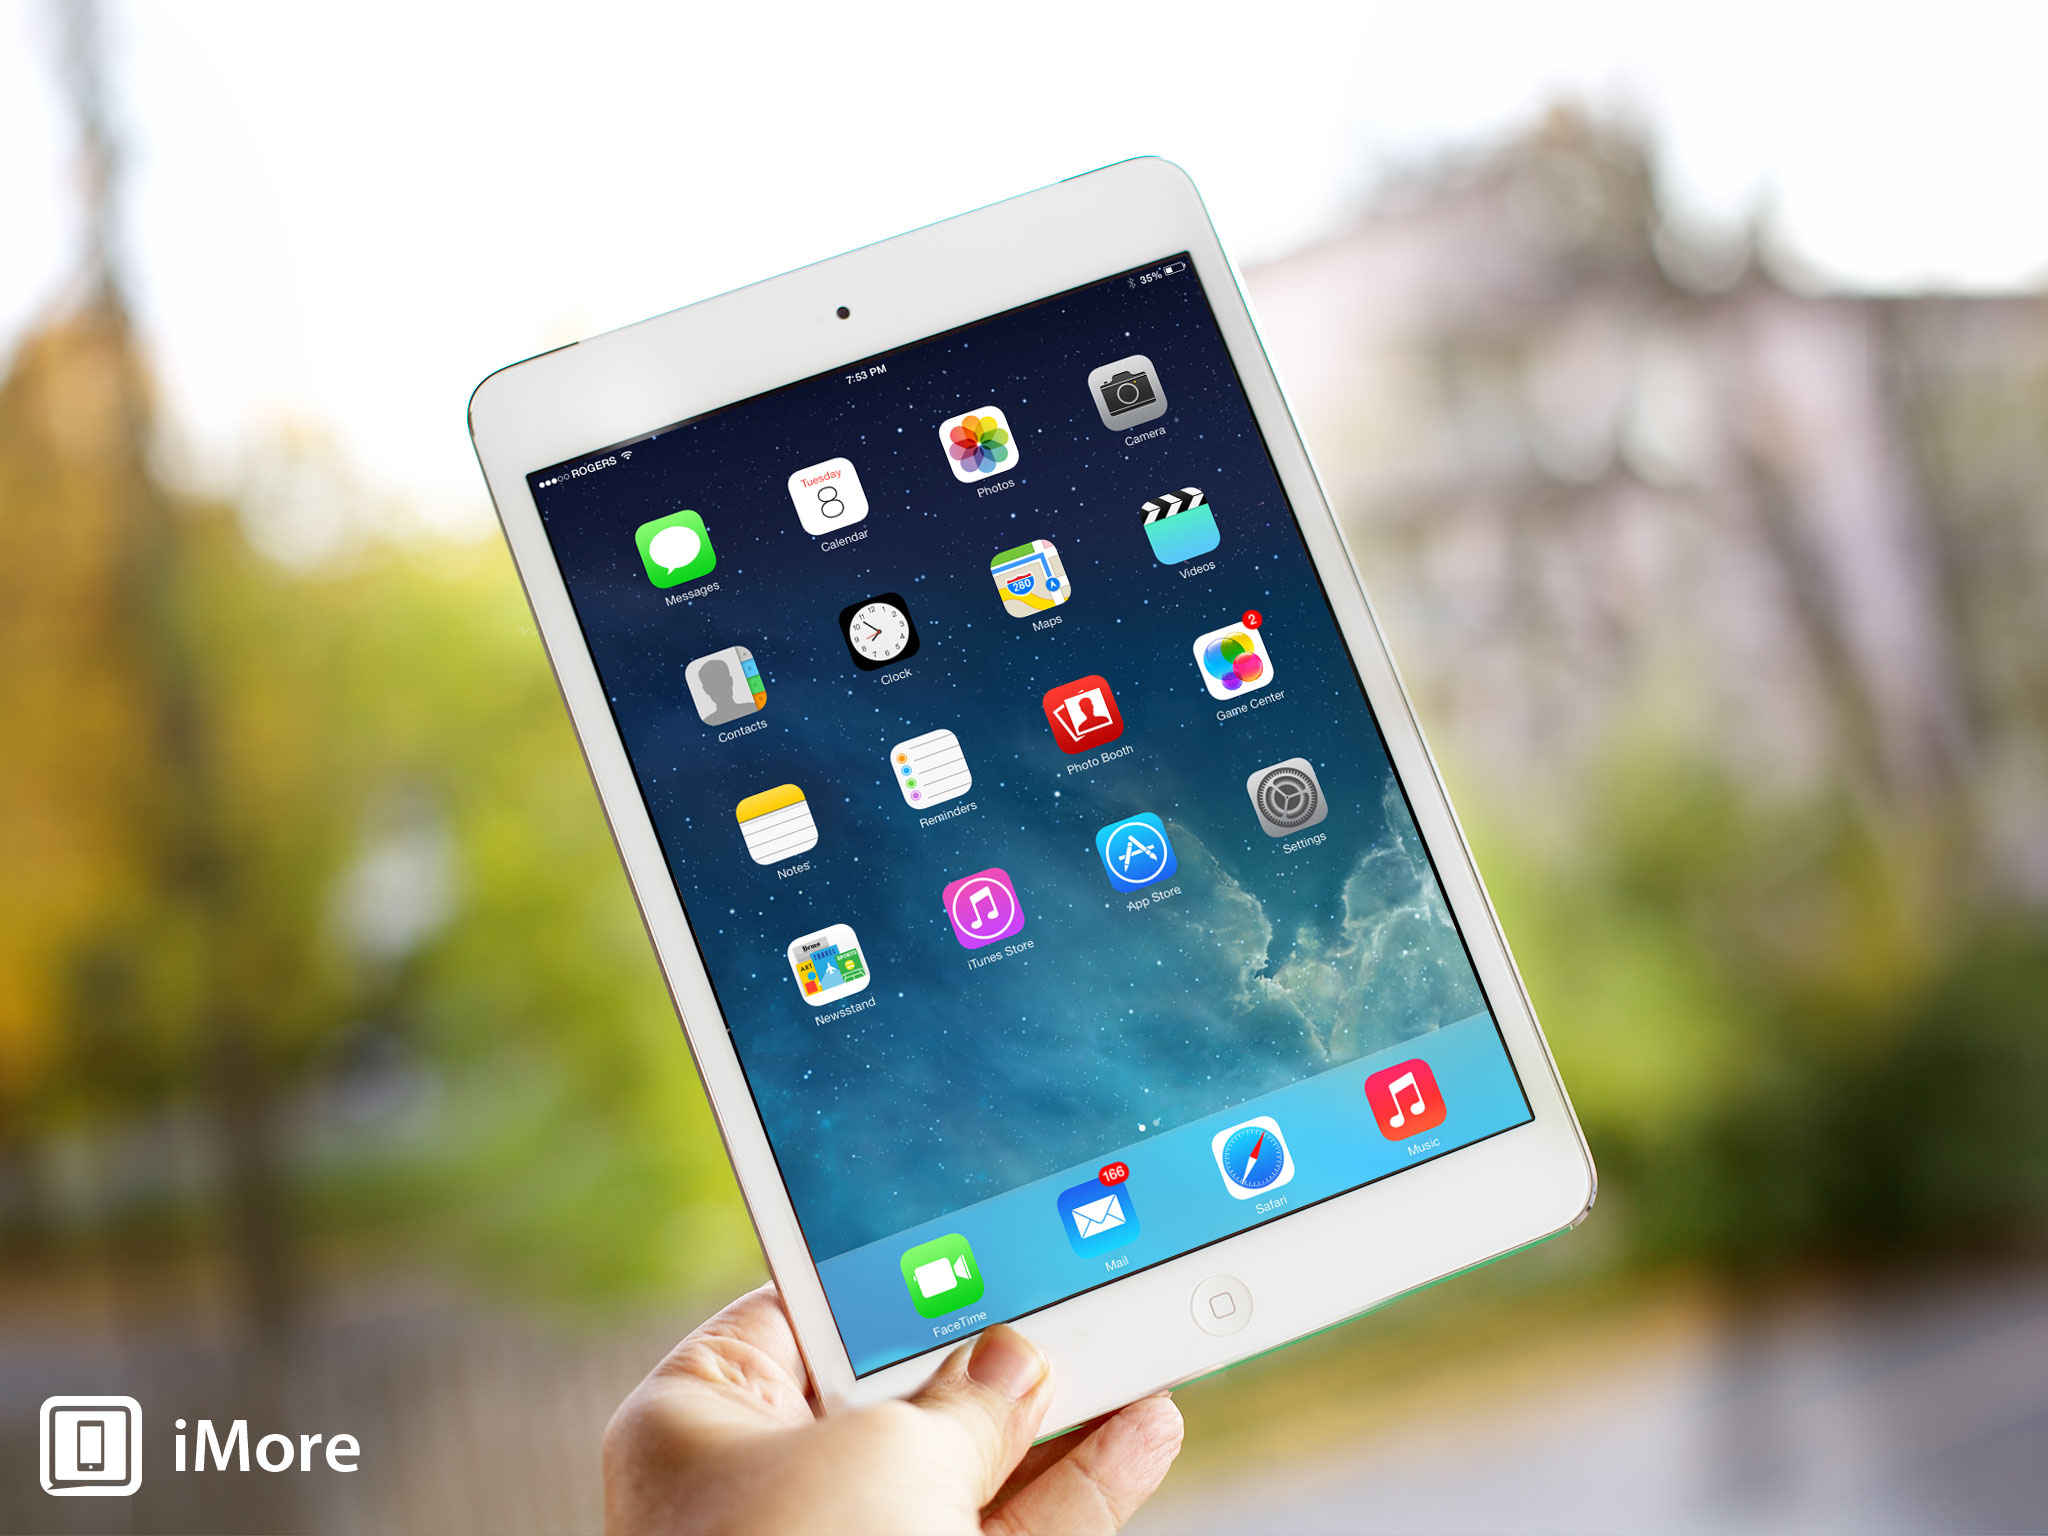 Imagining iPad 5: Lighter, thinner design